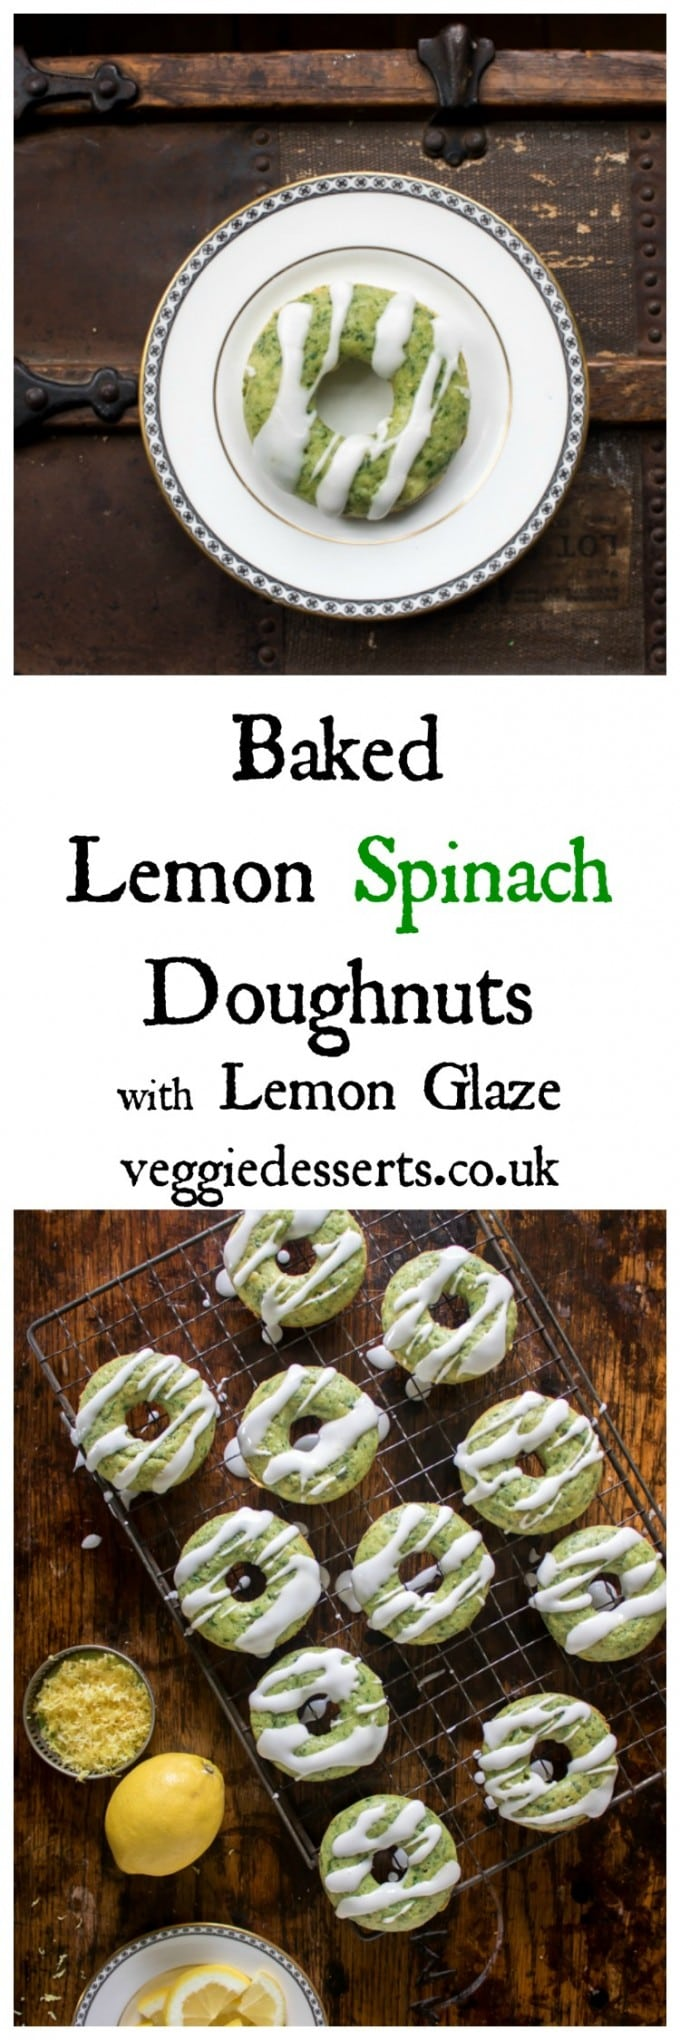 Baked Lemon Spinach Doughnuts with Lemon Glaze. These baked lemon spinach doughnuts are bright green, but taste just like lemon. The flavour of the spinach fades, leaving that amazing colour and some extra goodness in the doughnuts. #vegetabledessert #veggiedesserts #doughnuts #bakeddoughnuts #greencake #spinachdessert